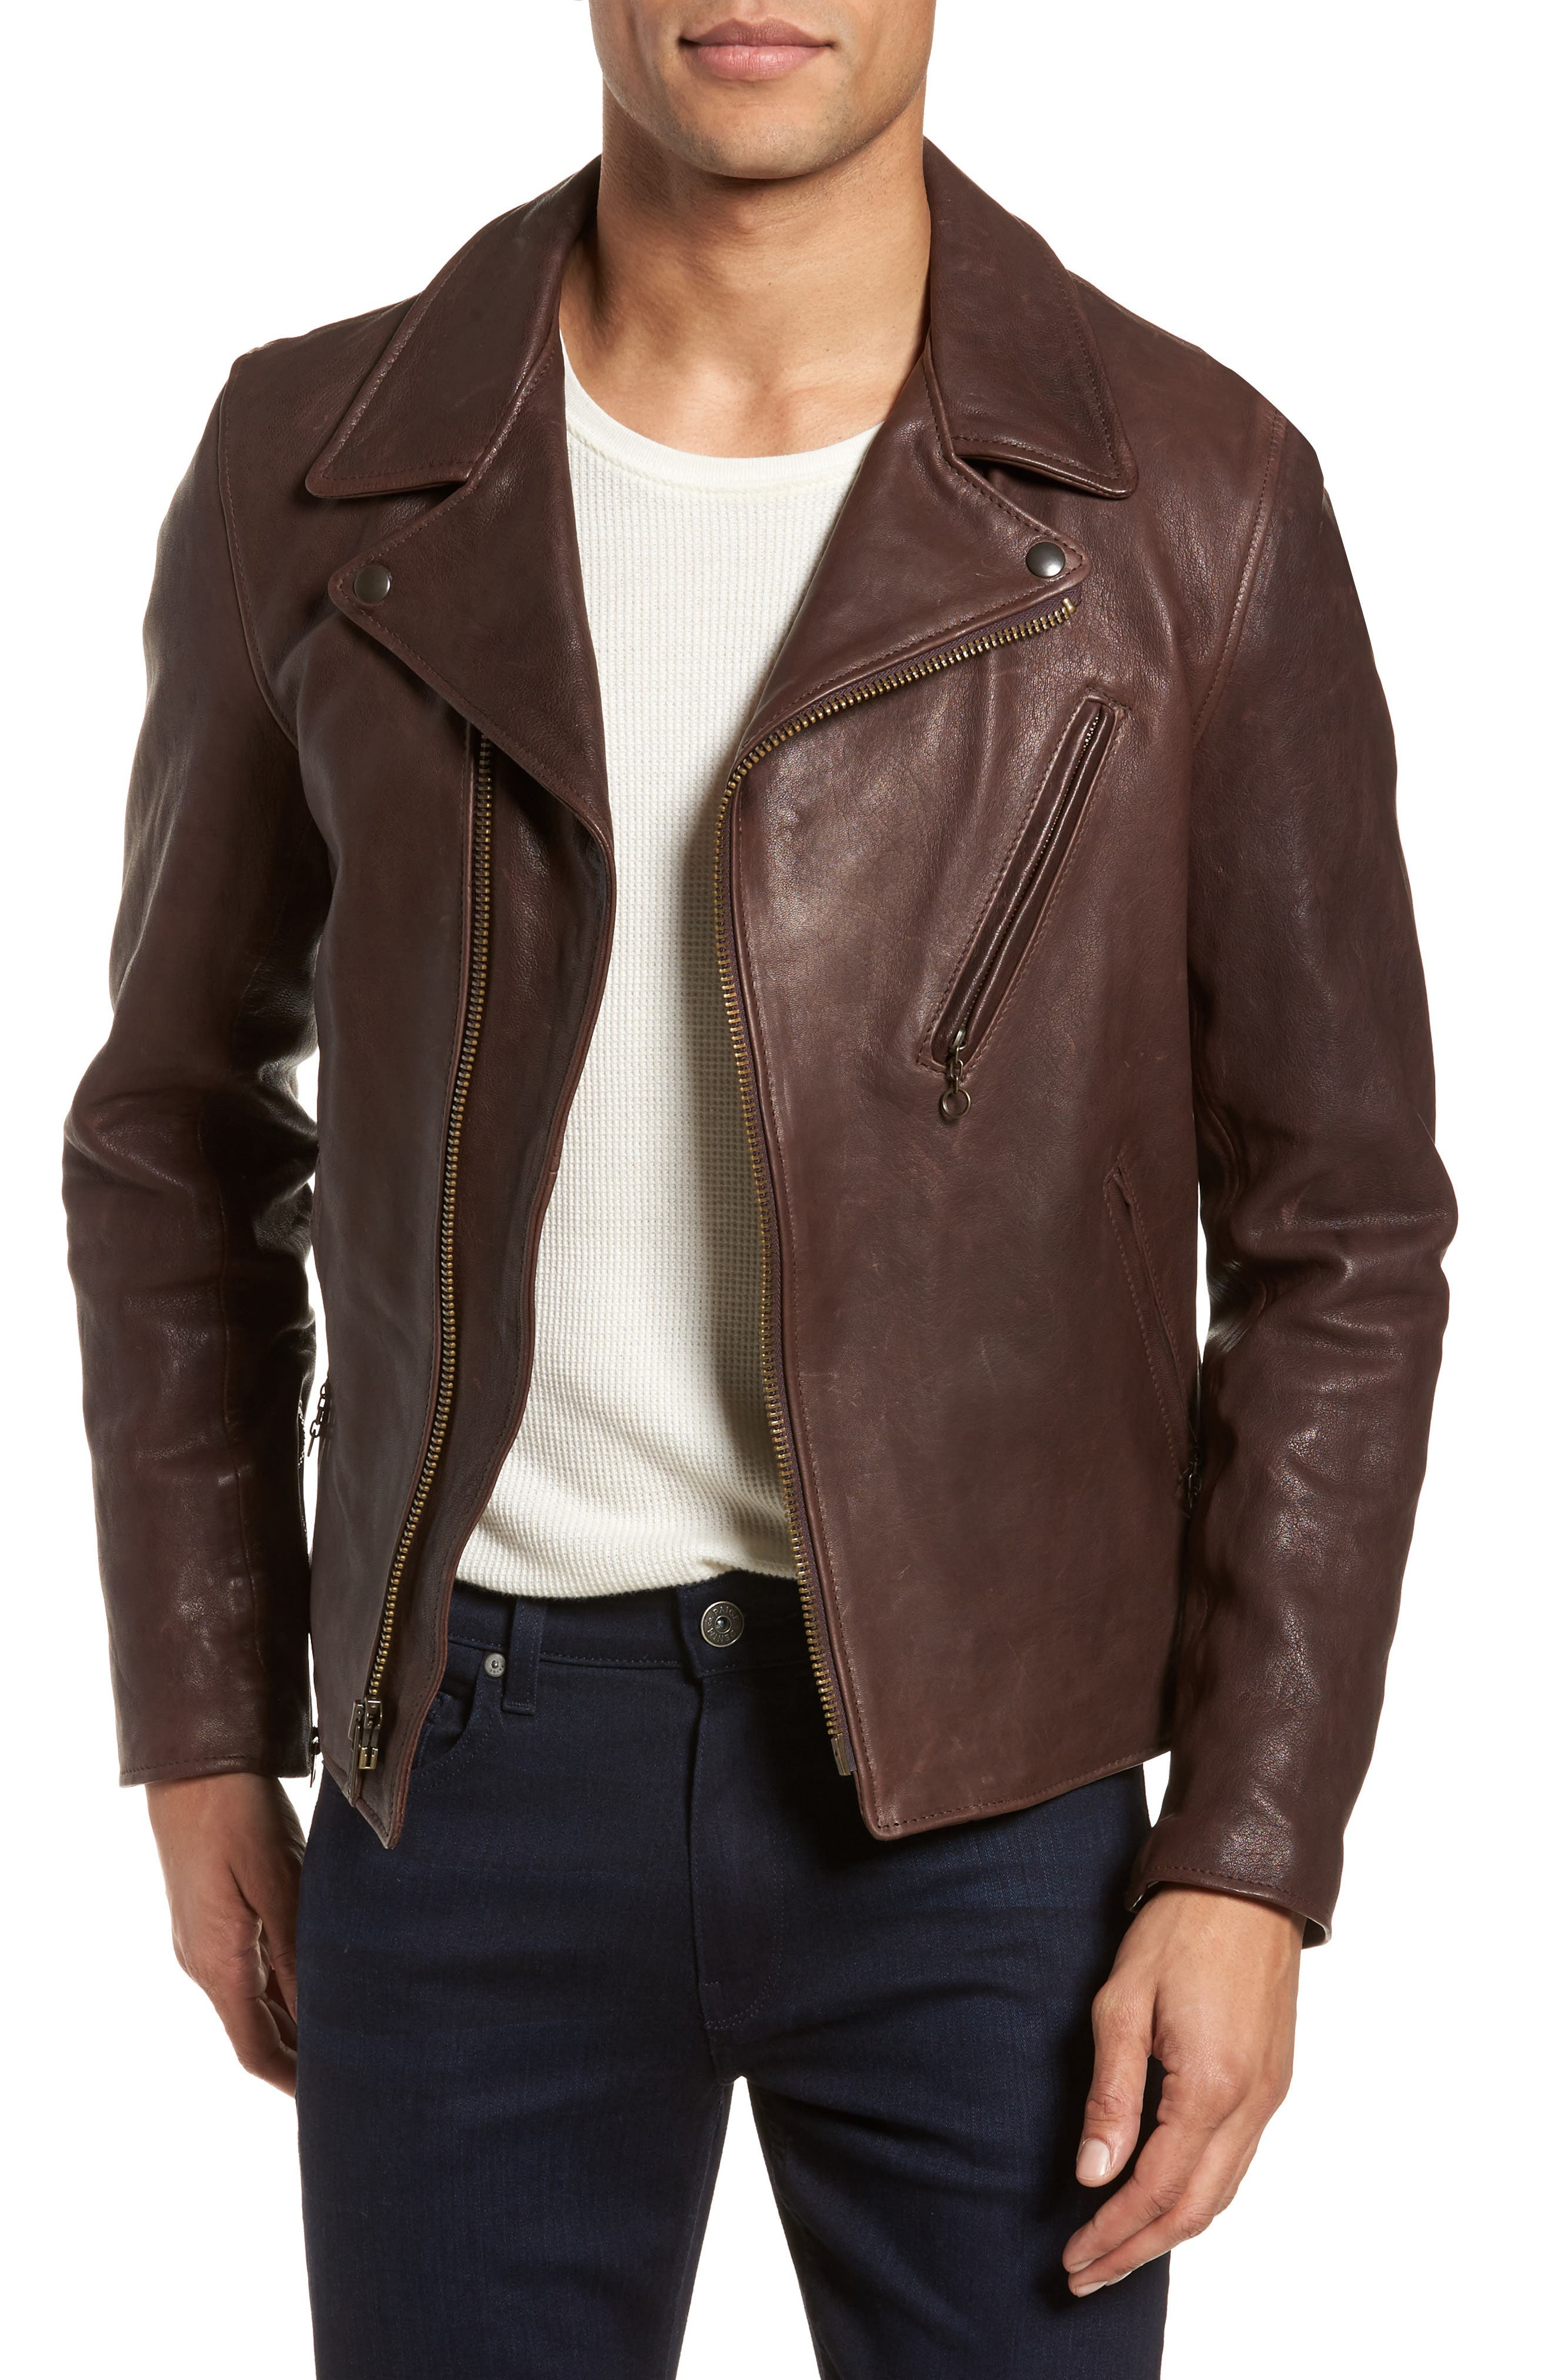 Perfecto Brand Leather Jacket,                         Main,                         color, Brown